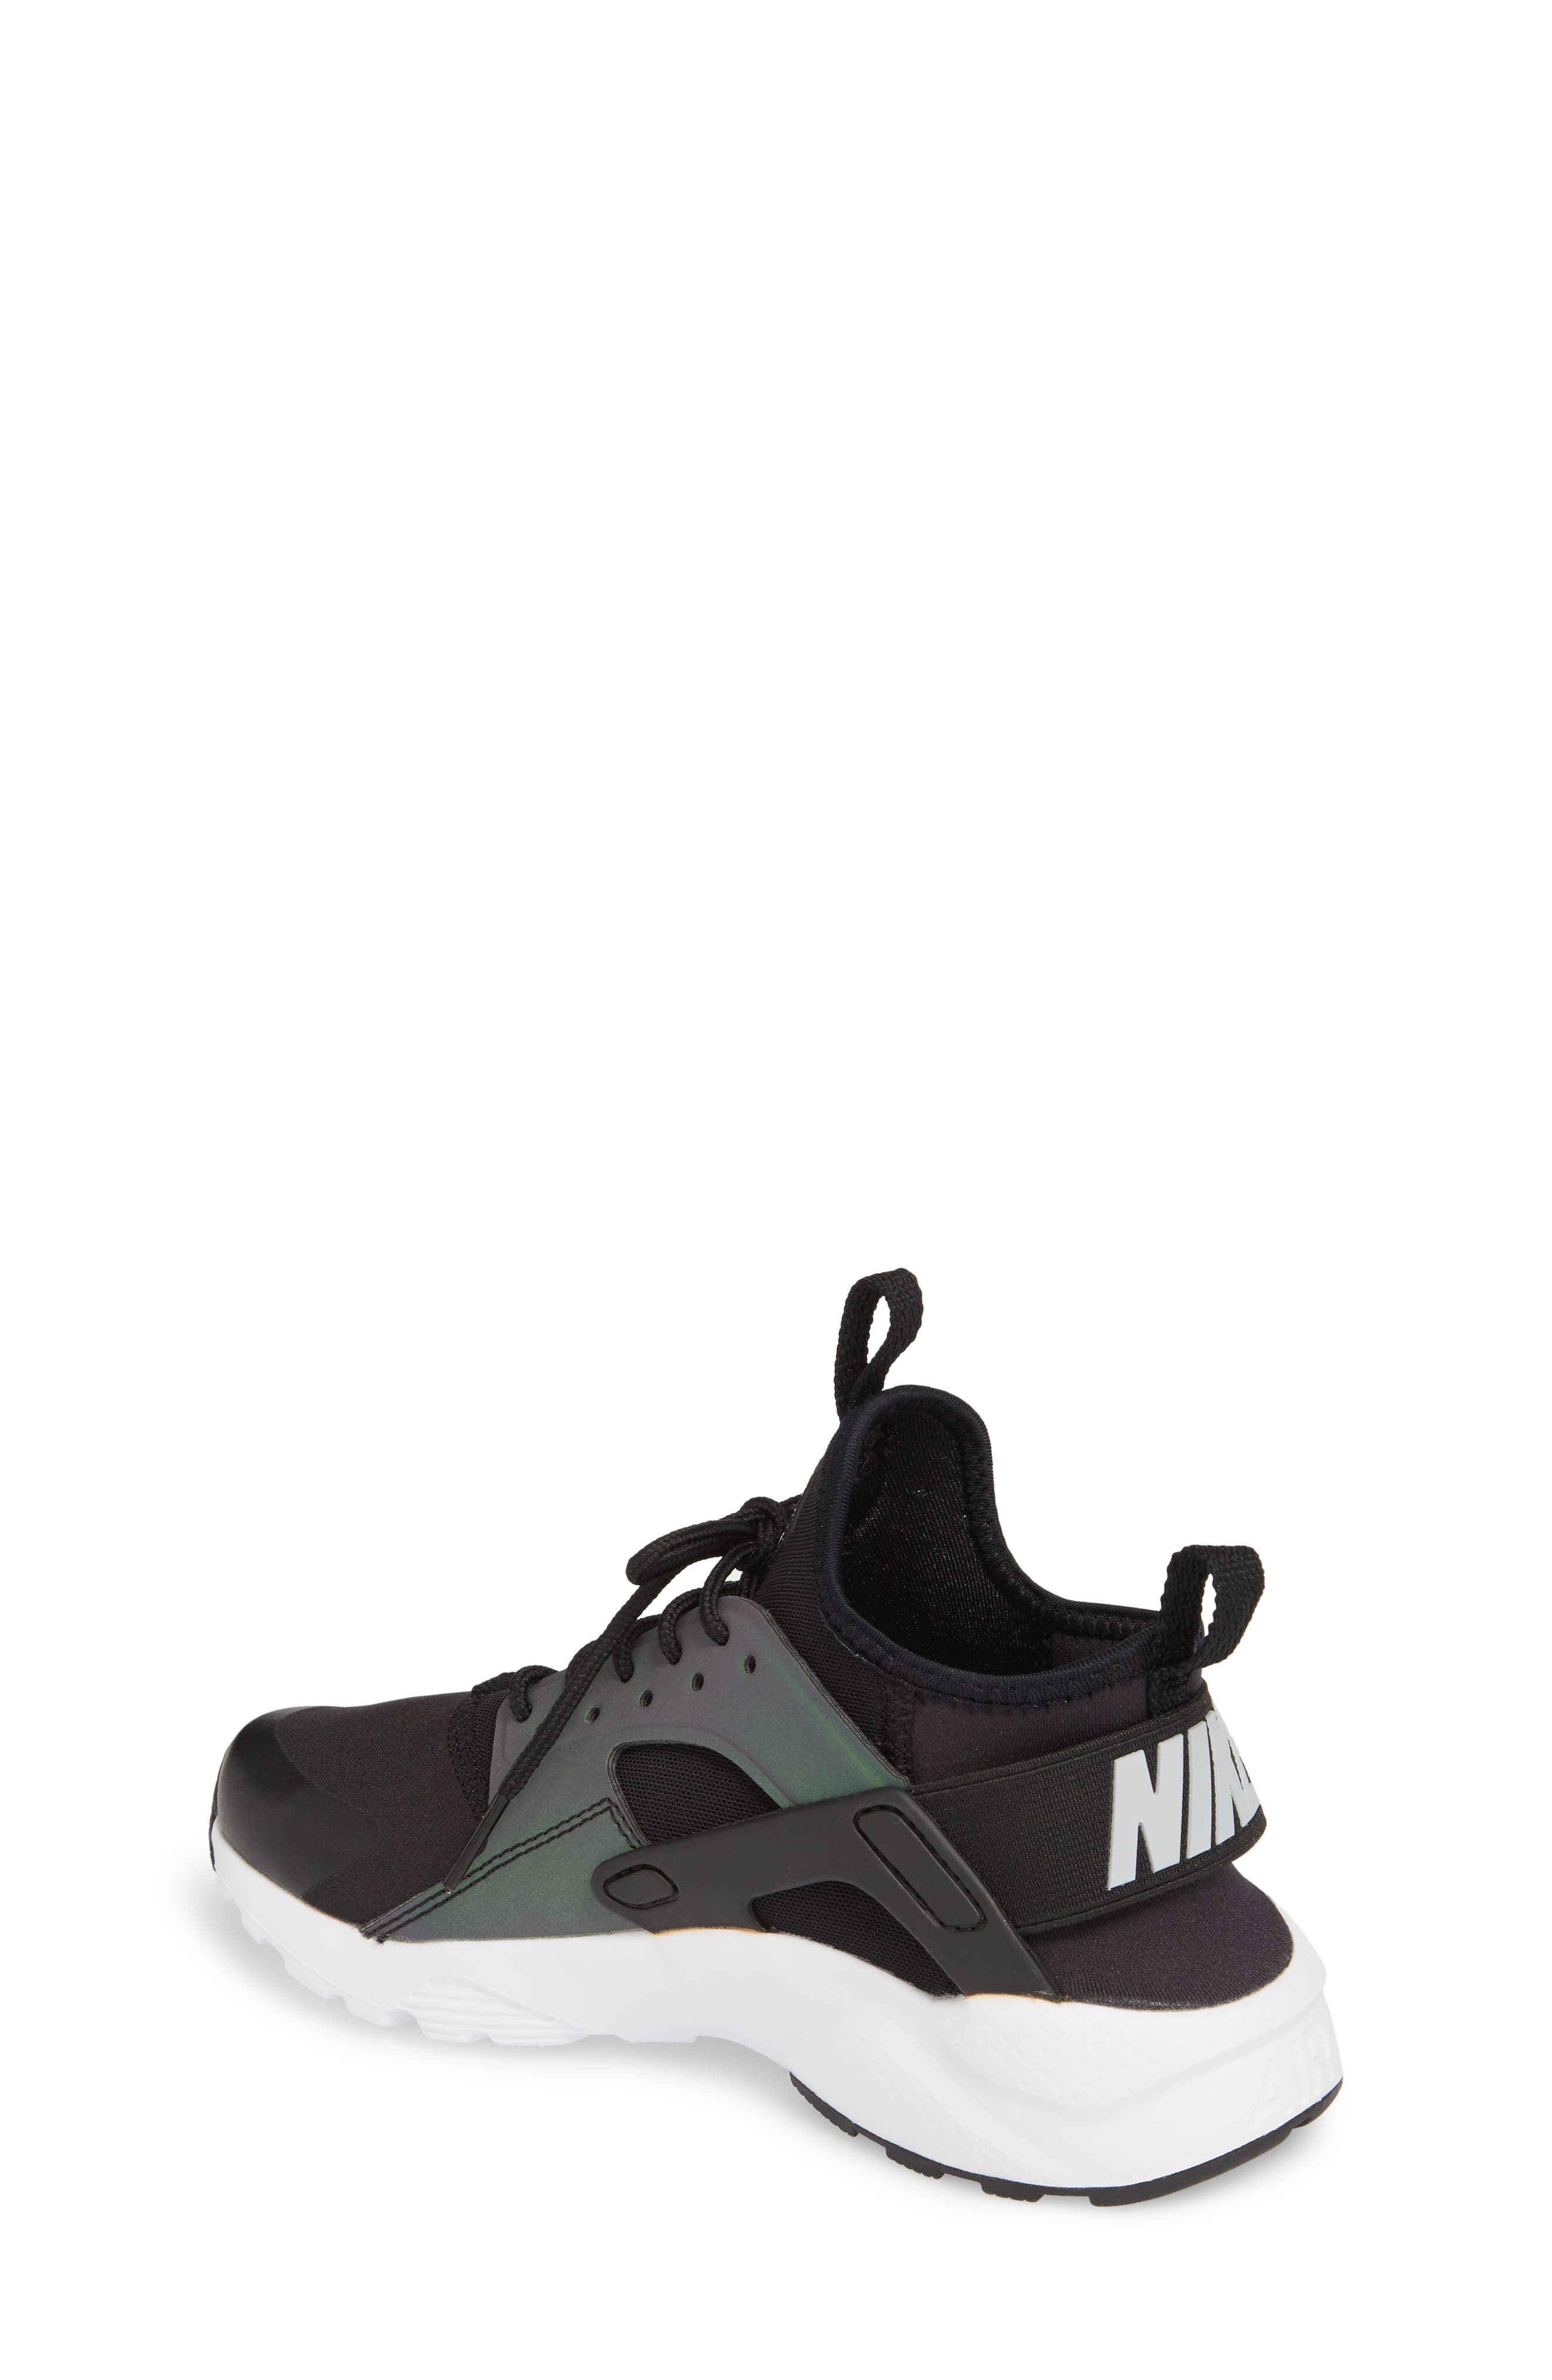 Air Huarache Run SE Sneaker,                             Alternate thumbnail 2, color,                             Black/ Wolf Grey-White